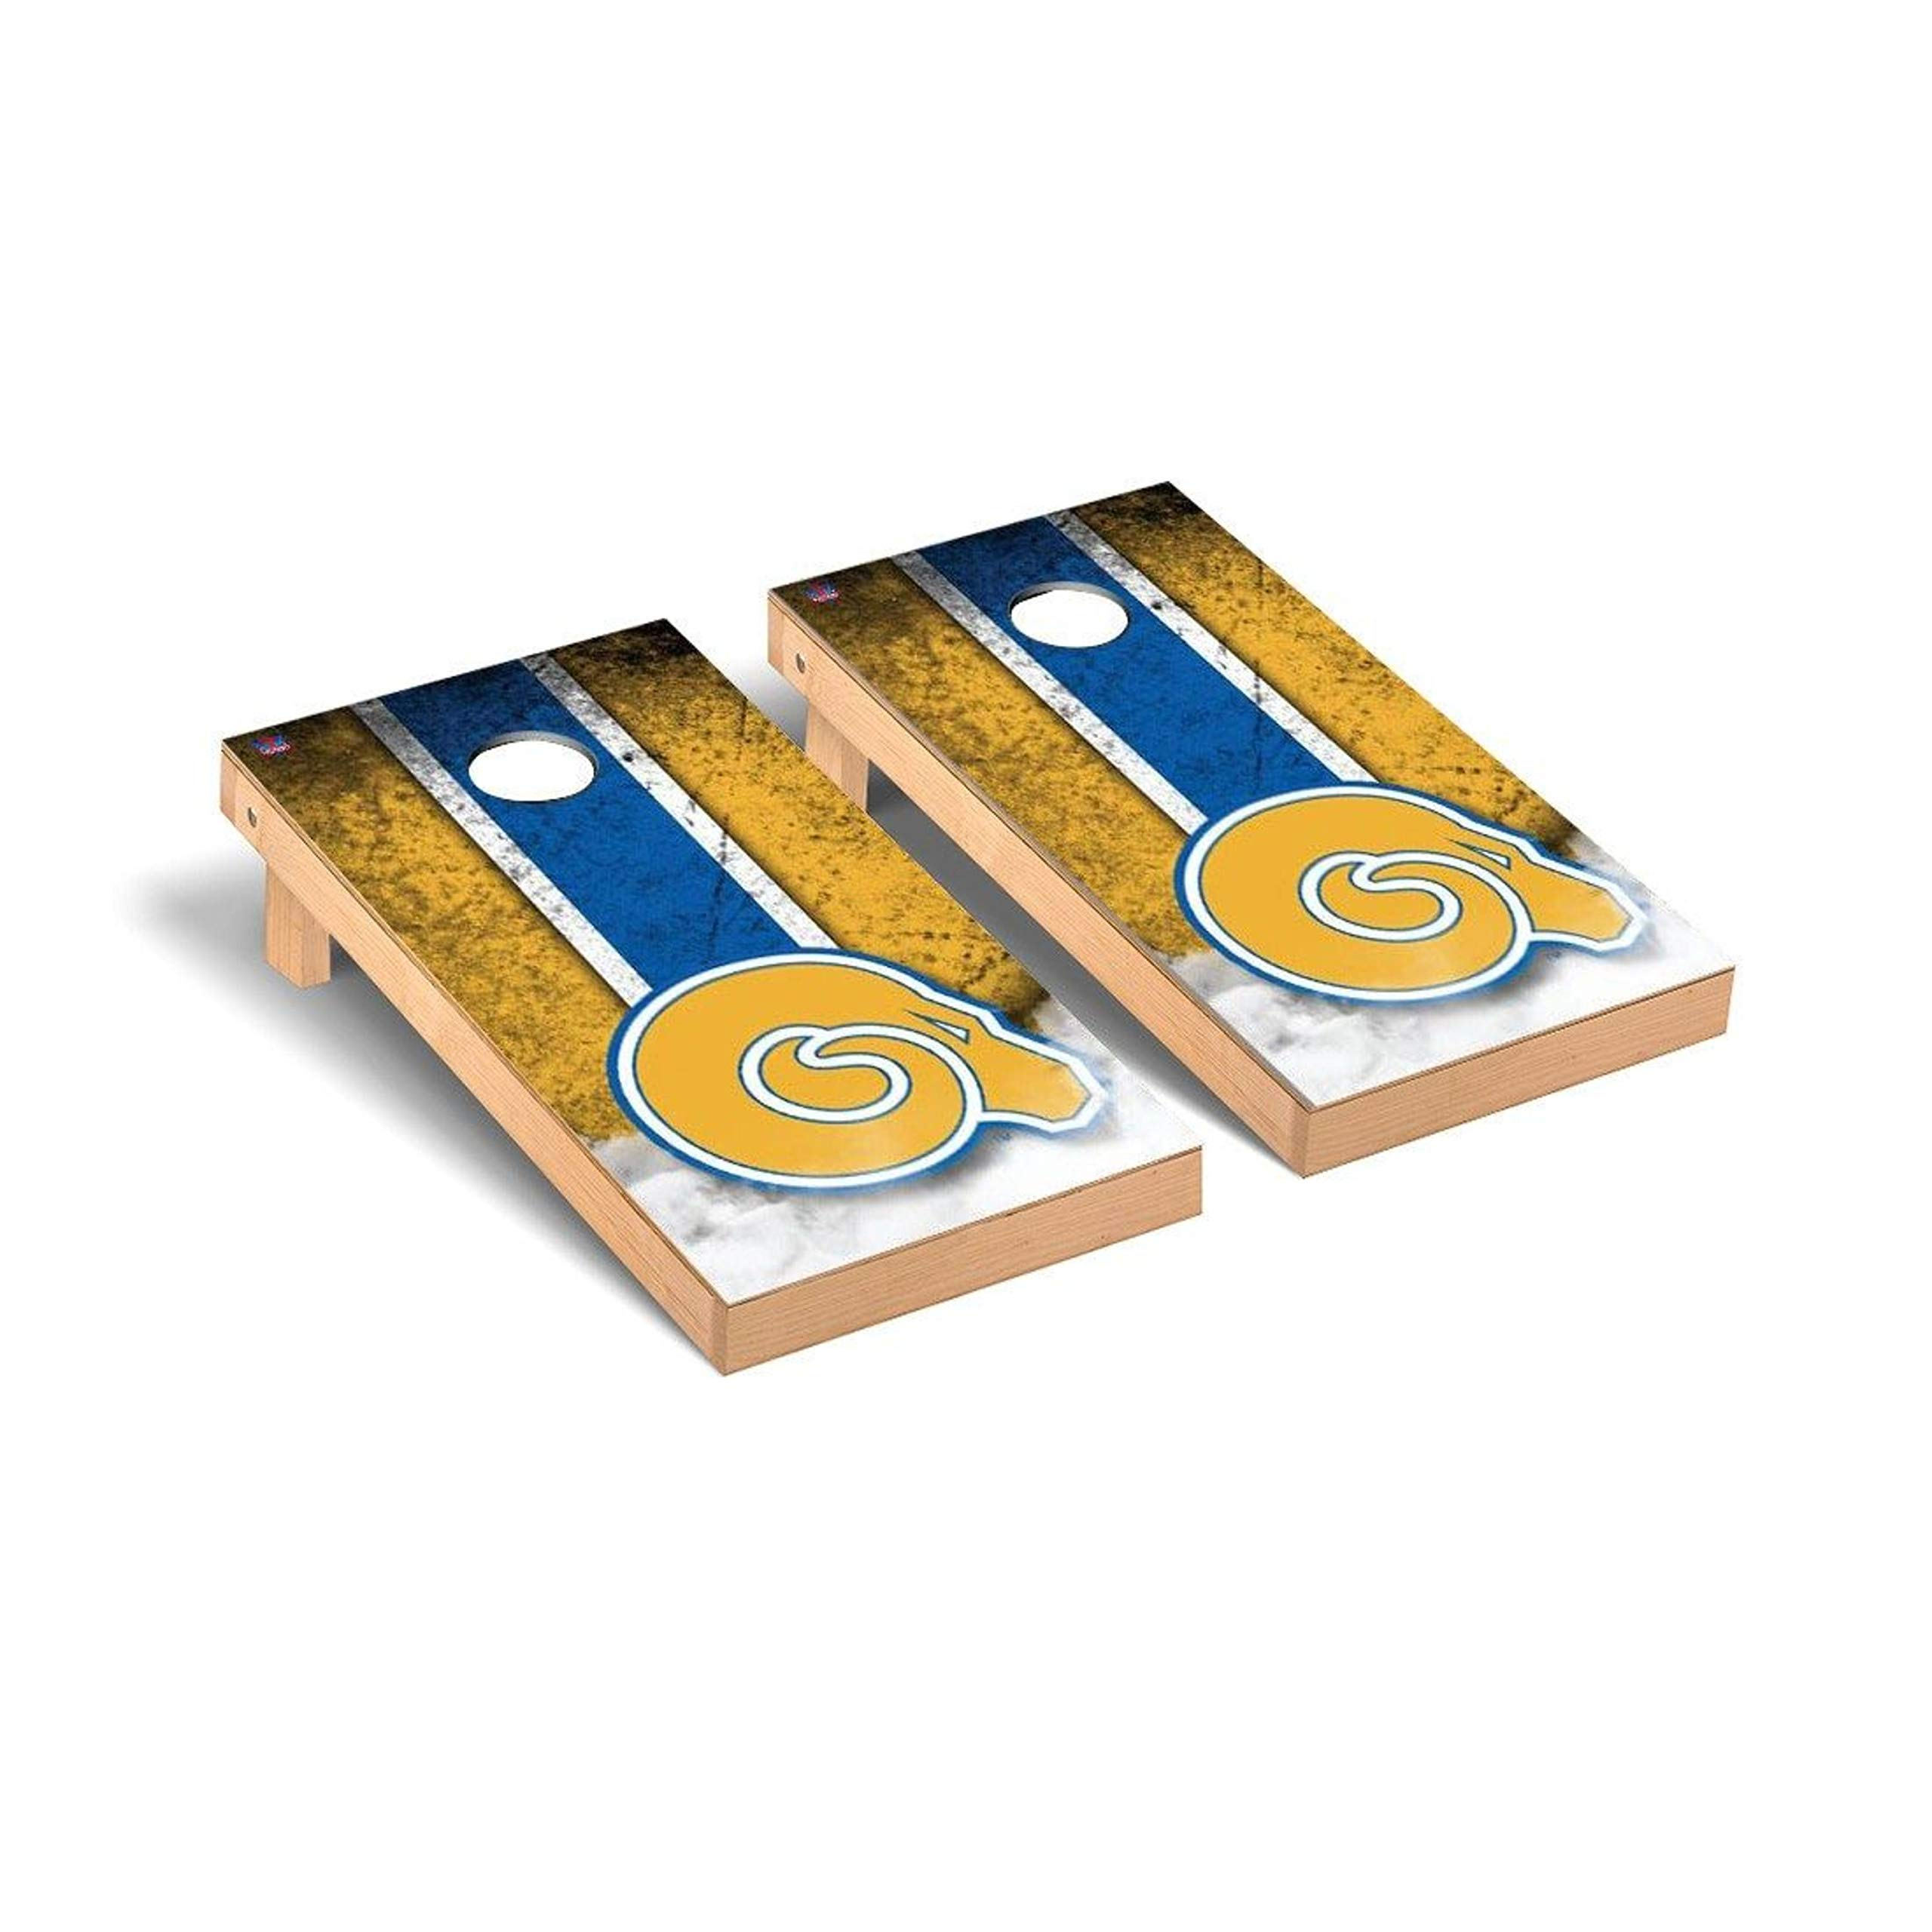 Victory Tailgate Regulation Collegiate NCAA Vintage Series Cornhole Board Set - 2 Boards, 8 Bags - Albany State Golden Rams